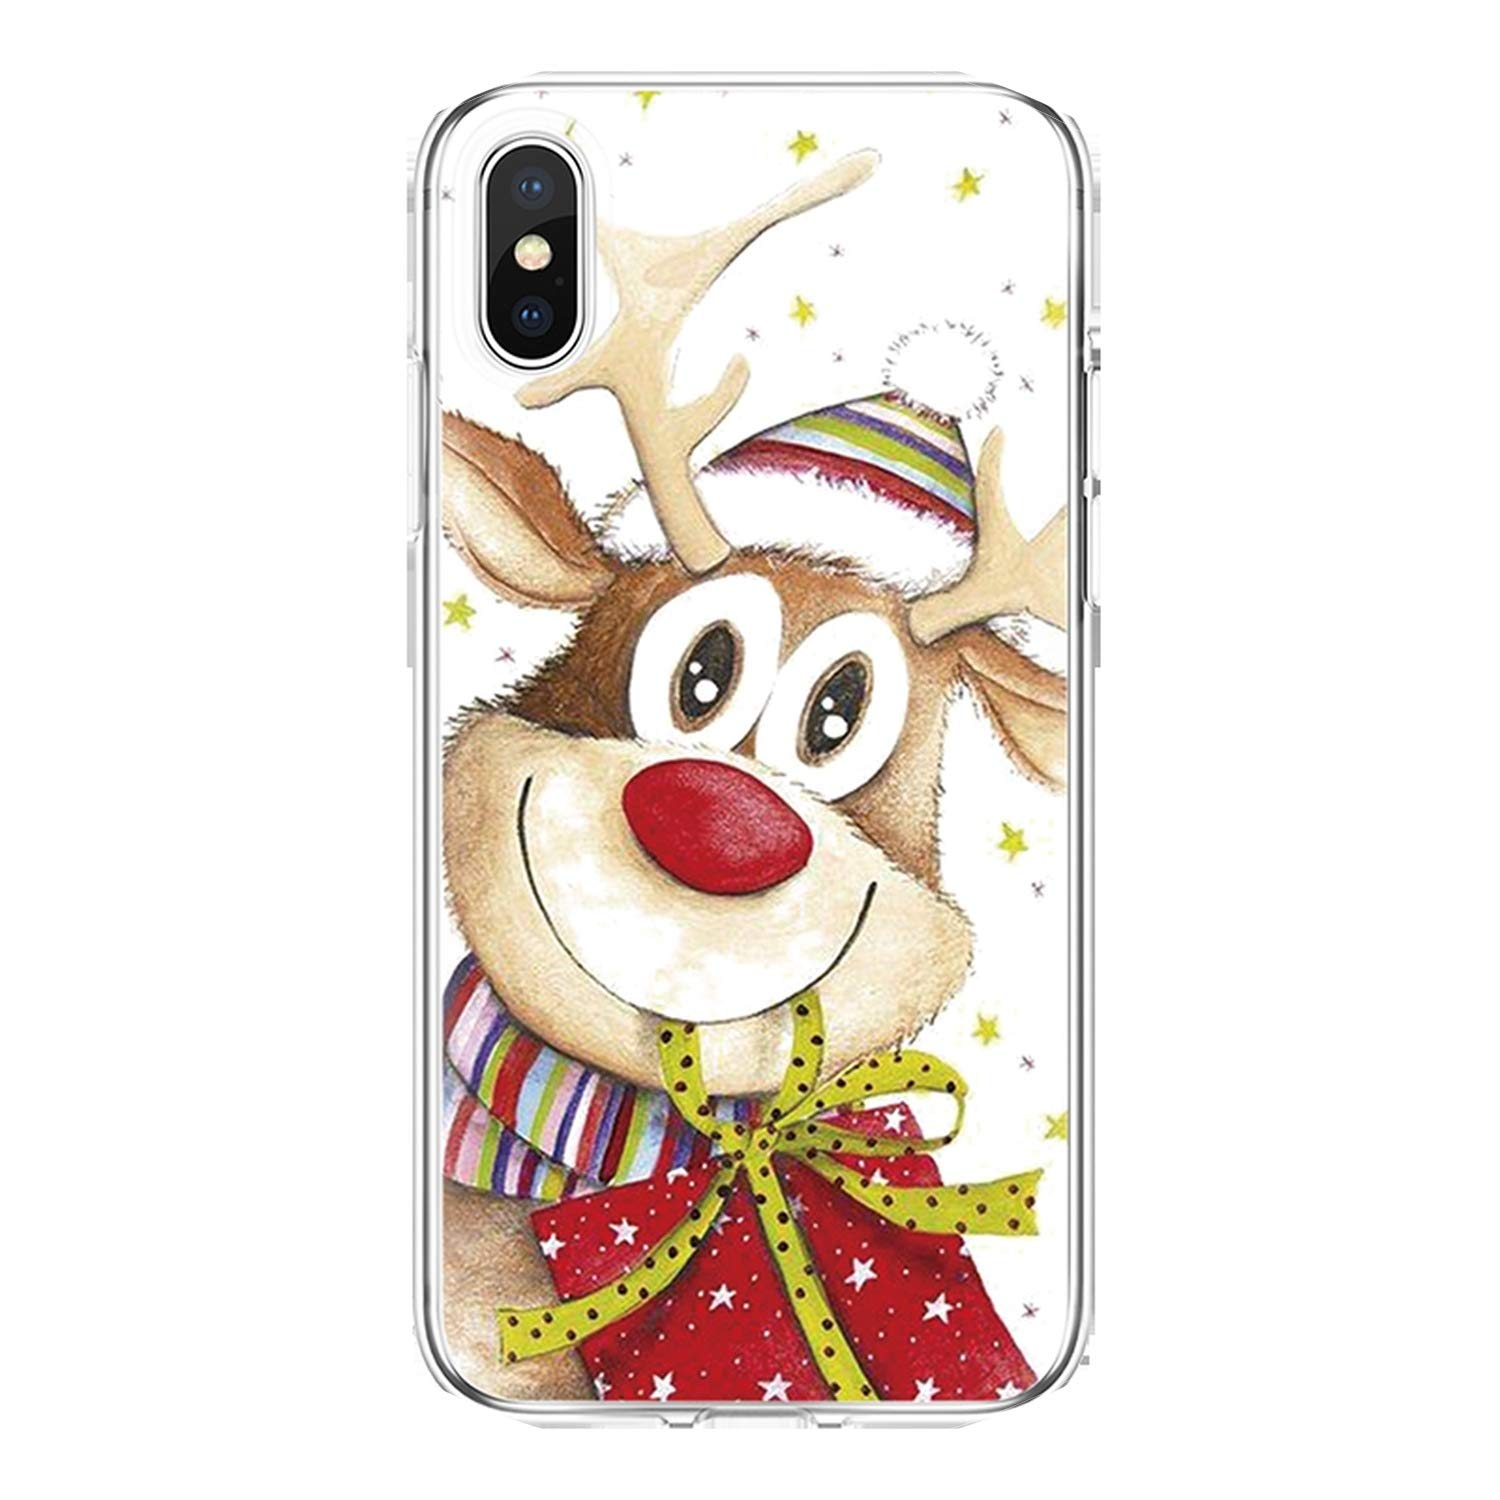 Amazon.com: Xmas Case for iPhone X Xs Max XR 5 SE 6 S 8 ...